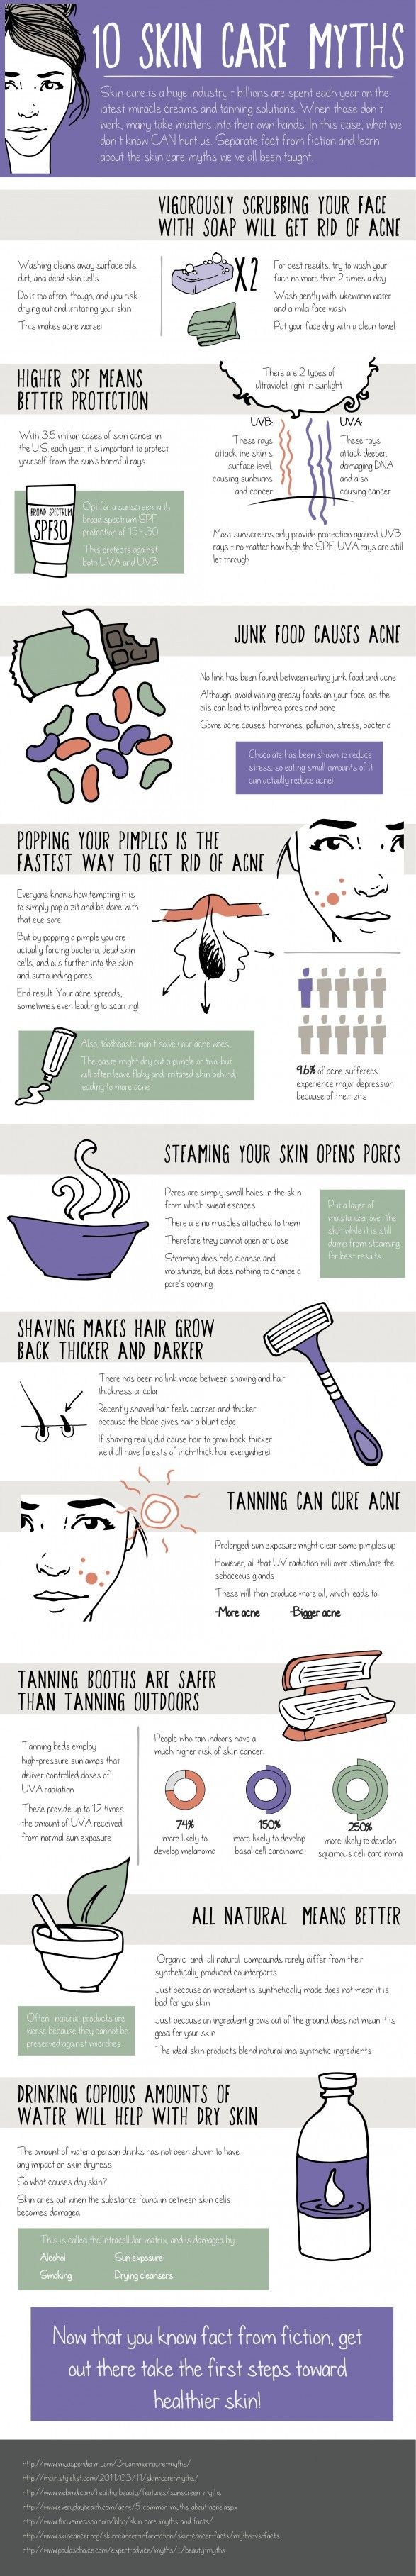 10 Skin Care Myth! Ladies, actually read this. It has some interesting things.